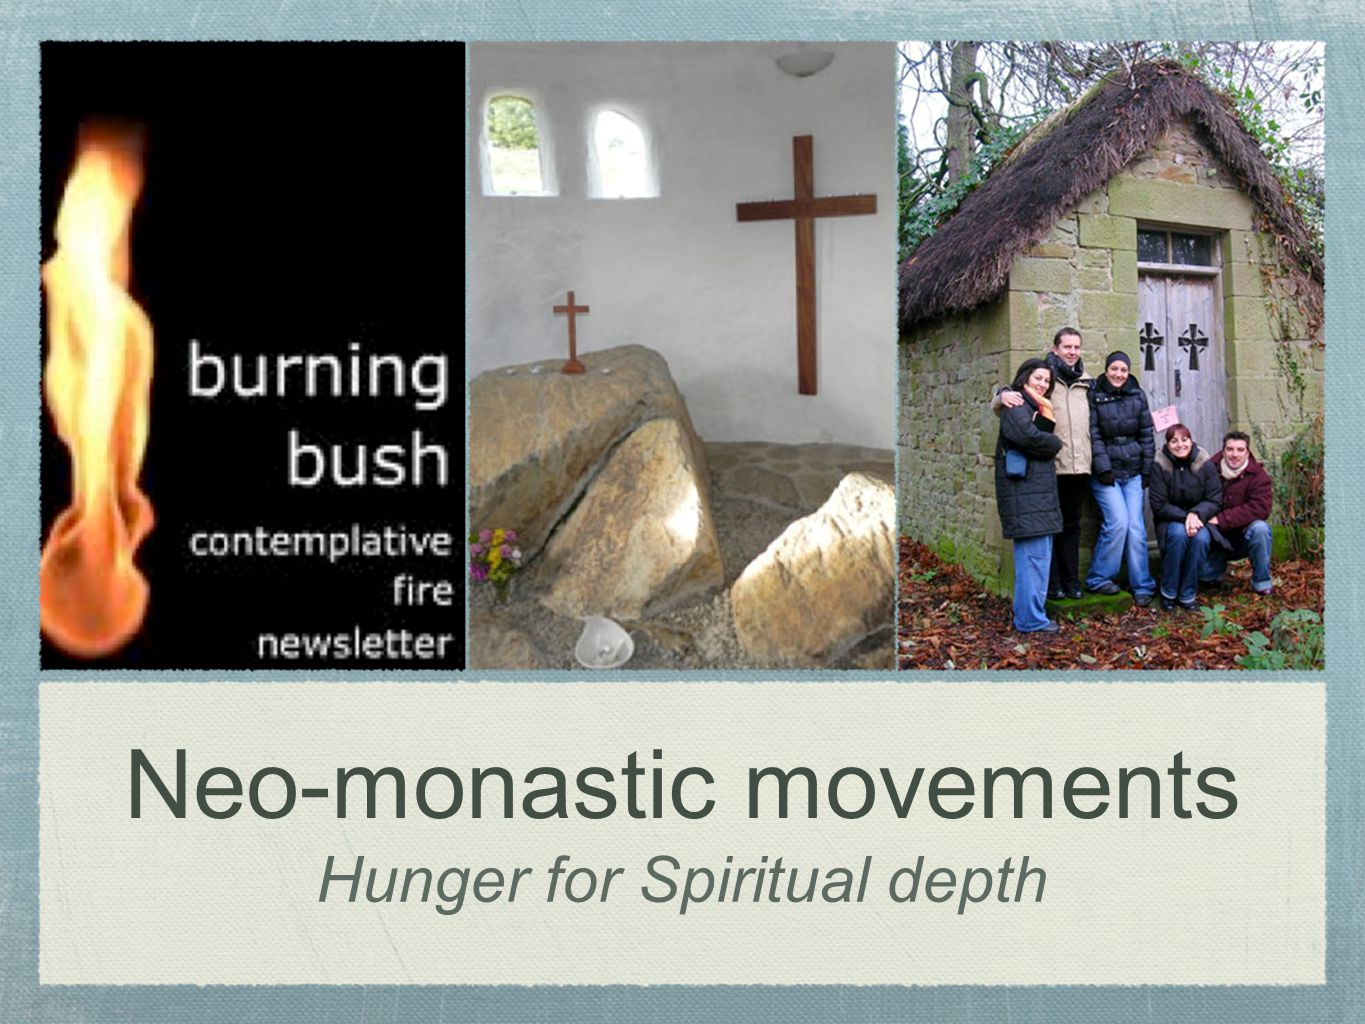 Neo-monastic movements